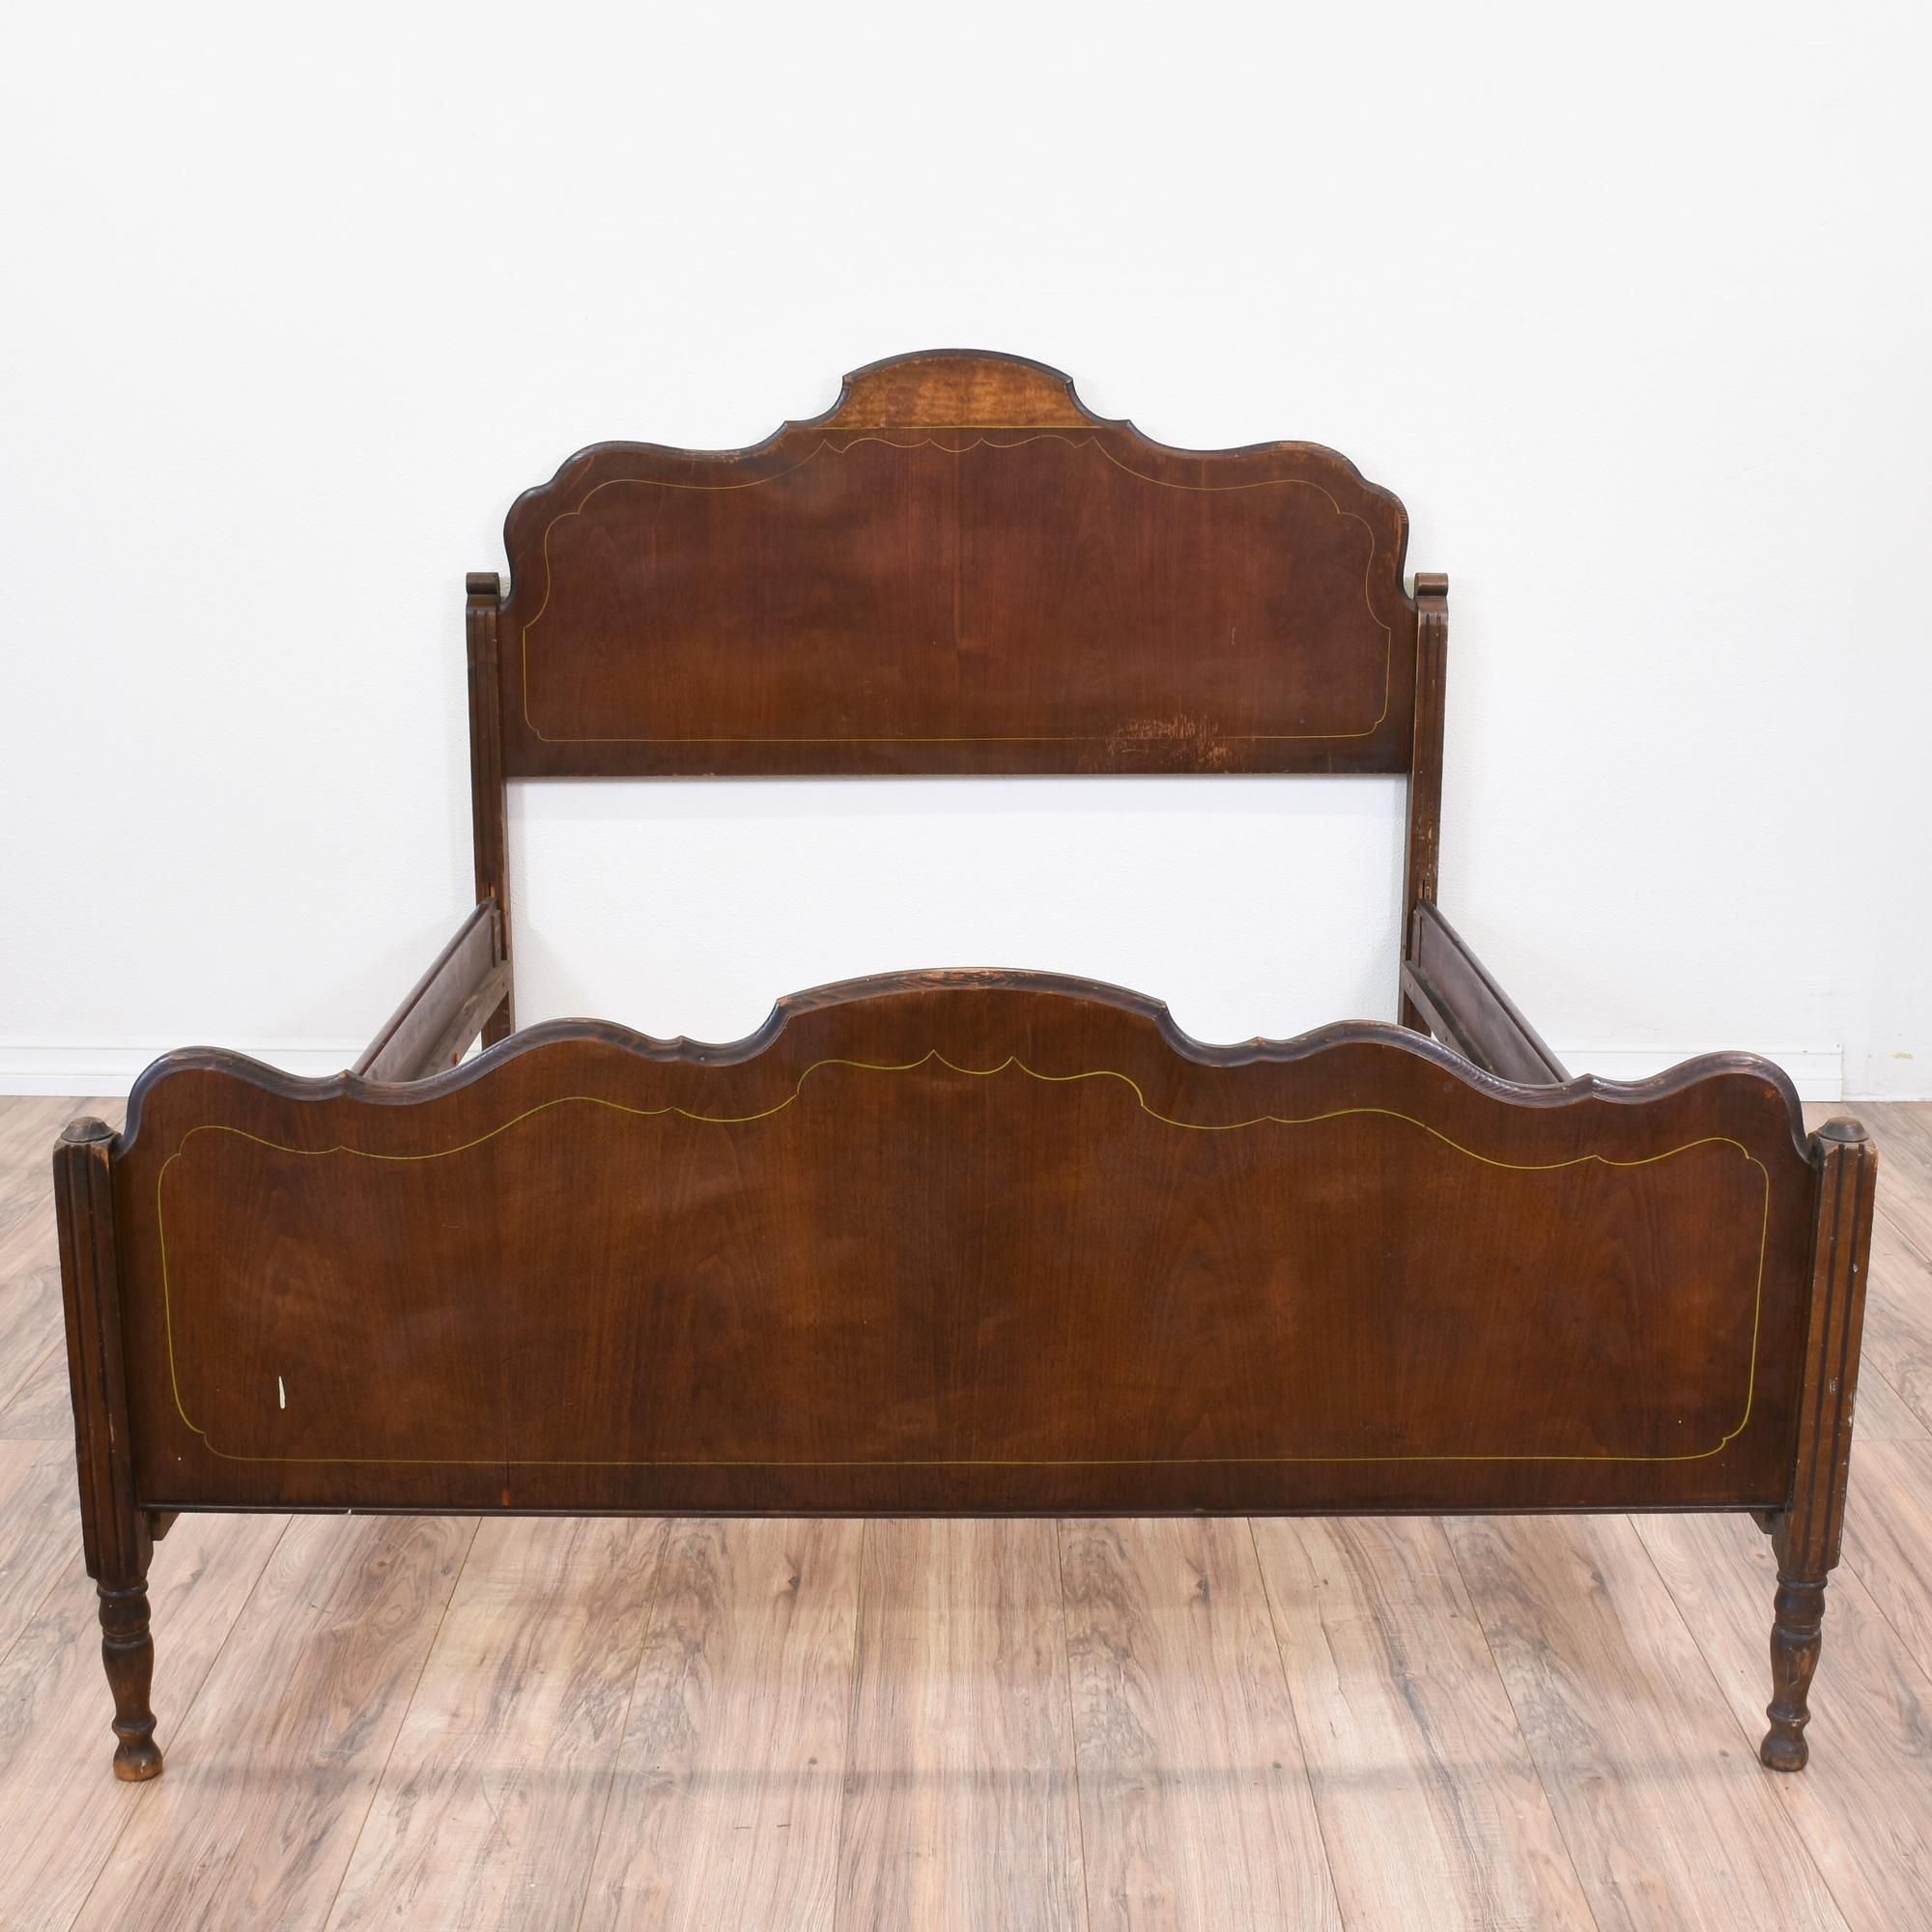 This antique bed is featured in a solid wood with a rustic